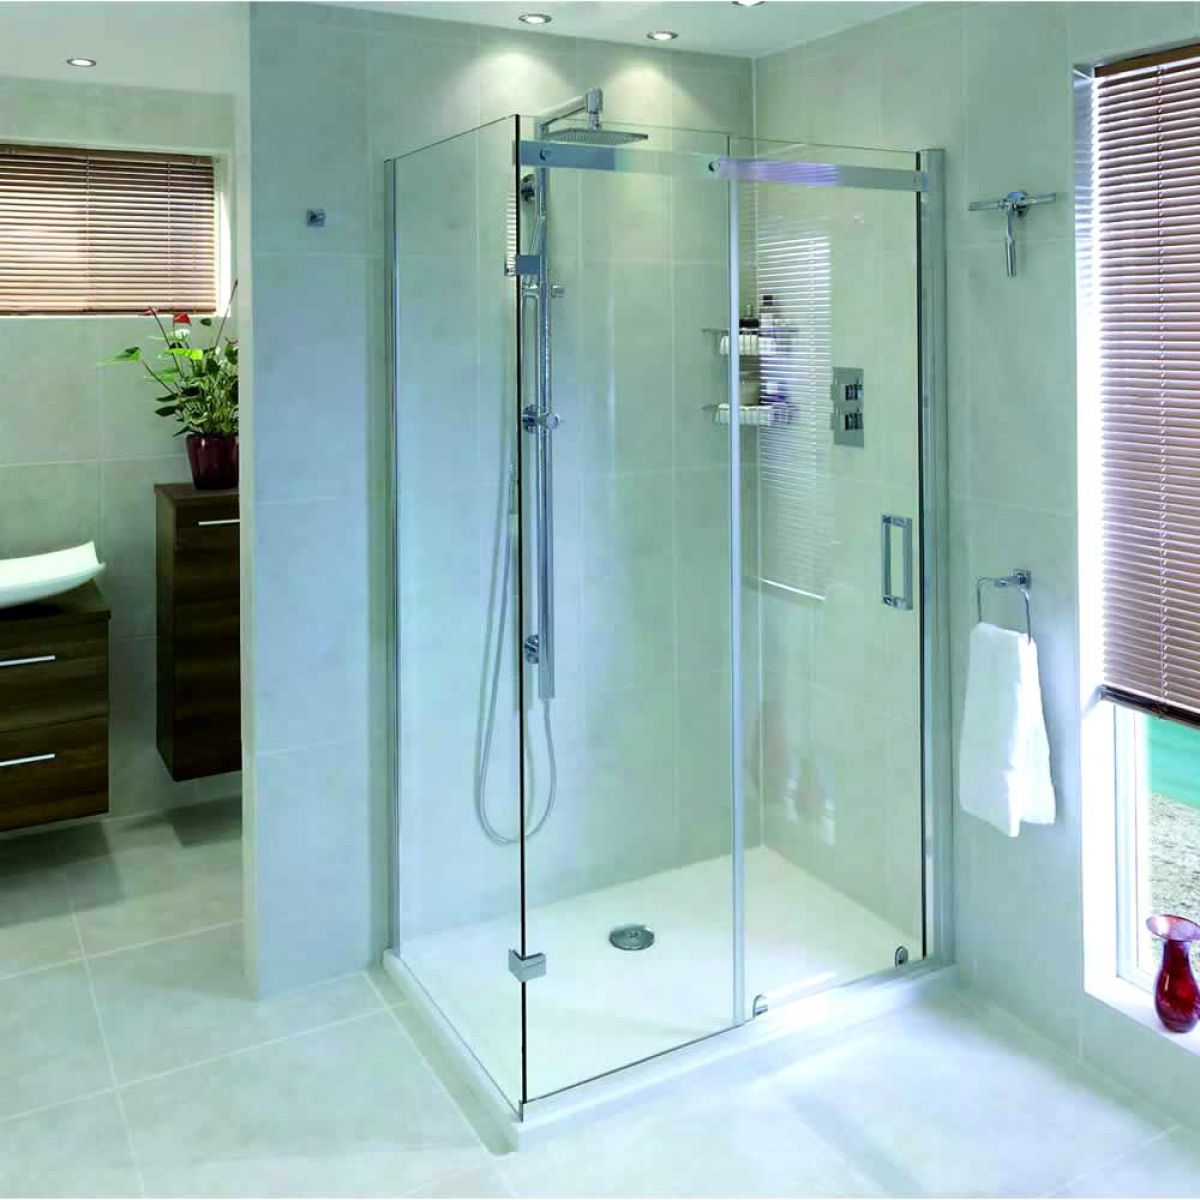 Unique Corner Shower Sizes Gallery - Bathtub Ideas - dilata.info